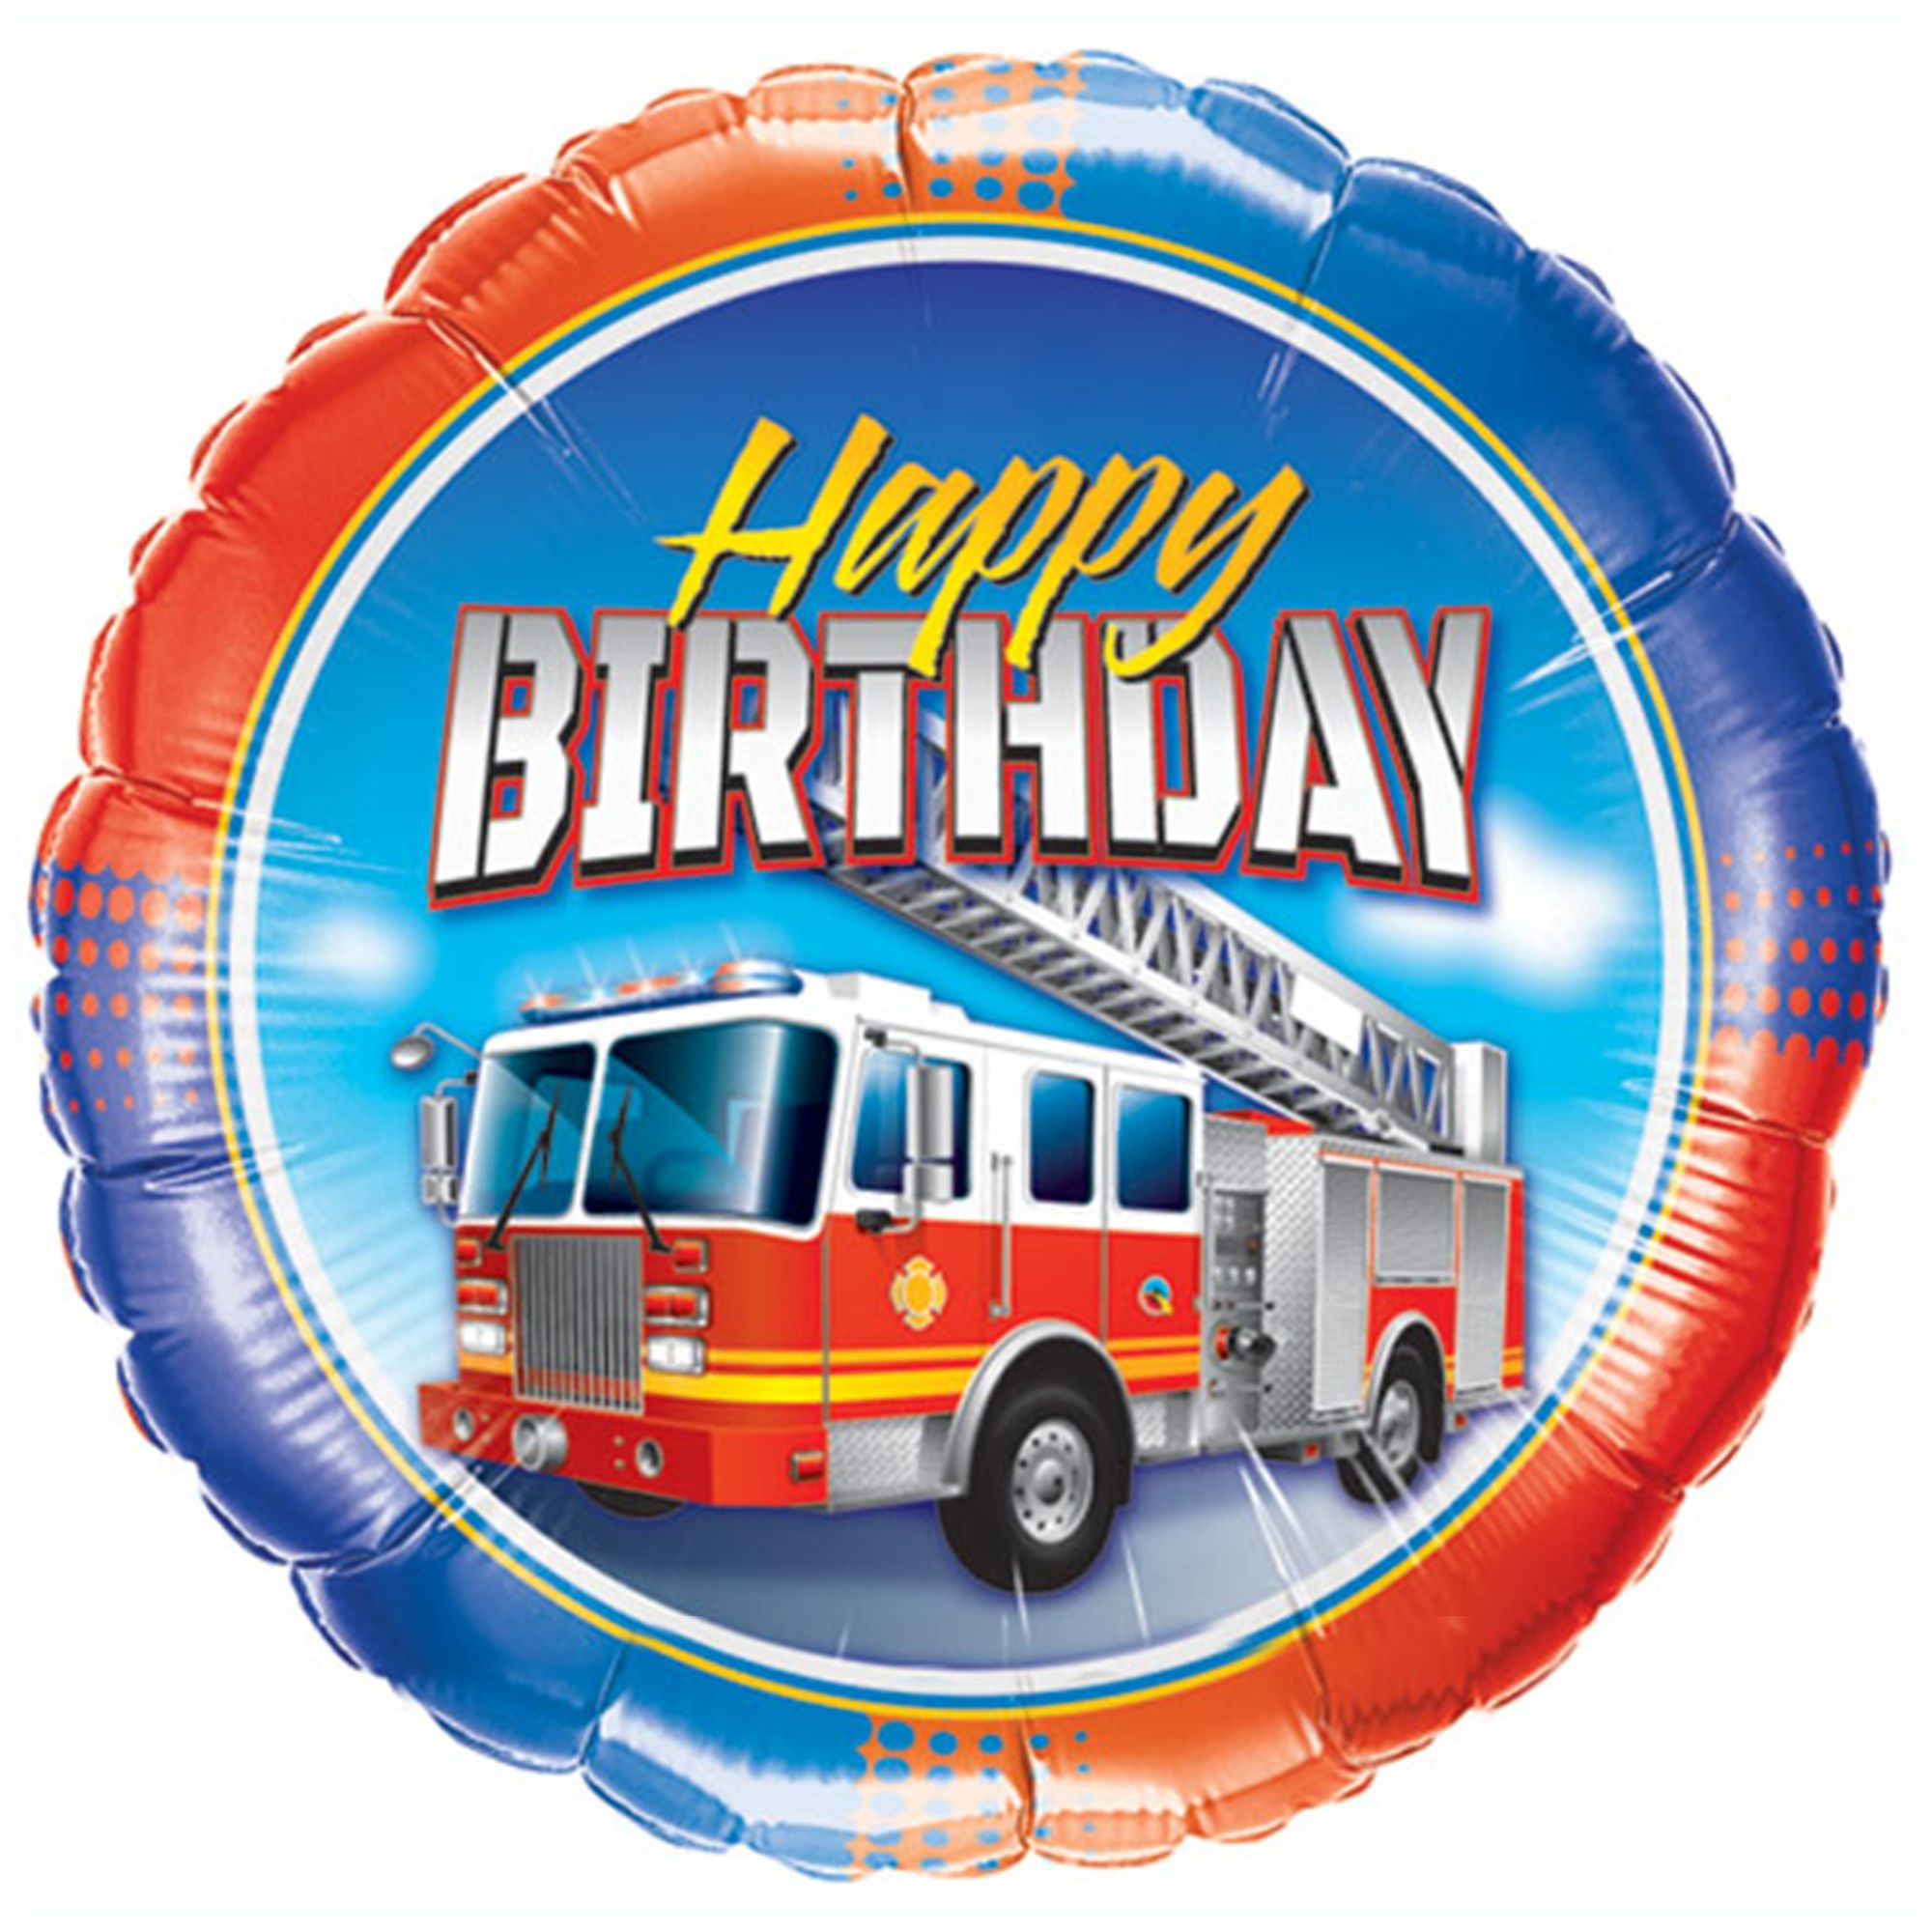 Say Happy Birthday With A Large Bold Fire Truck Balloon With